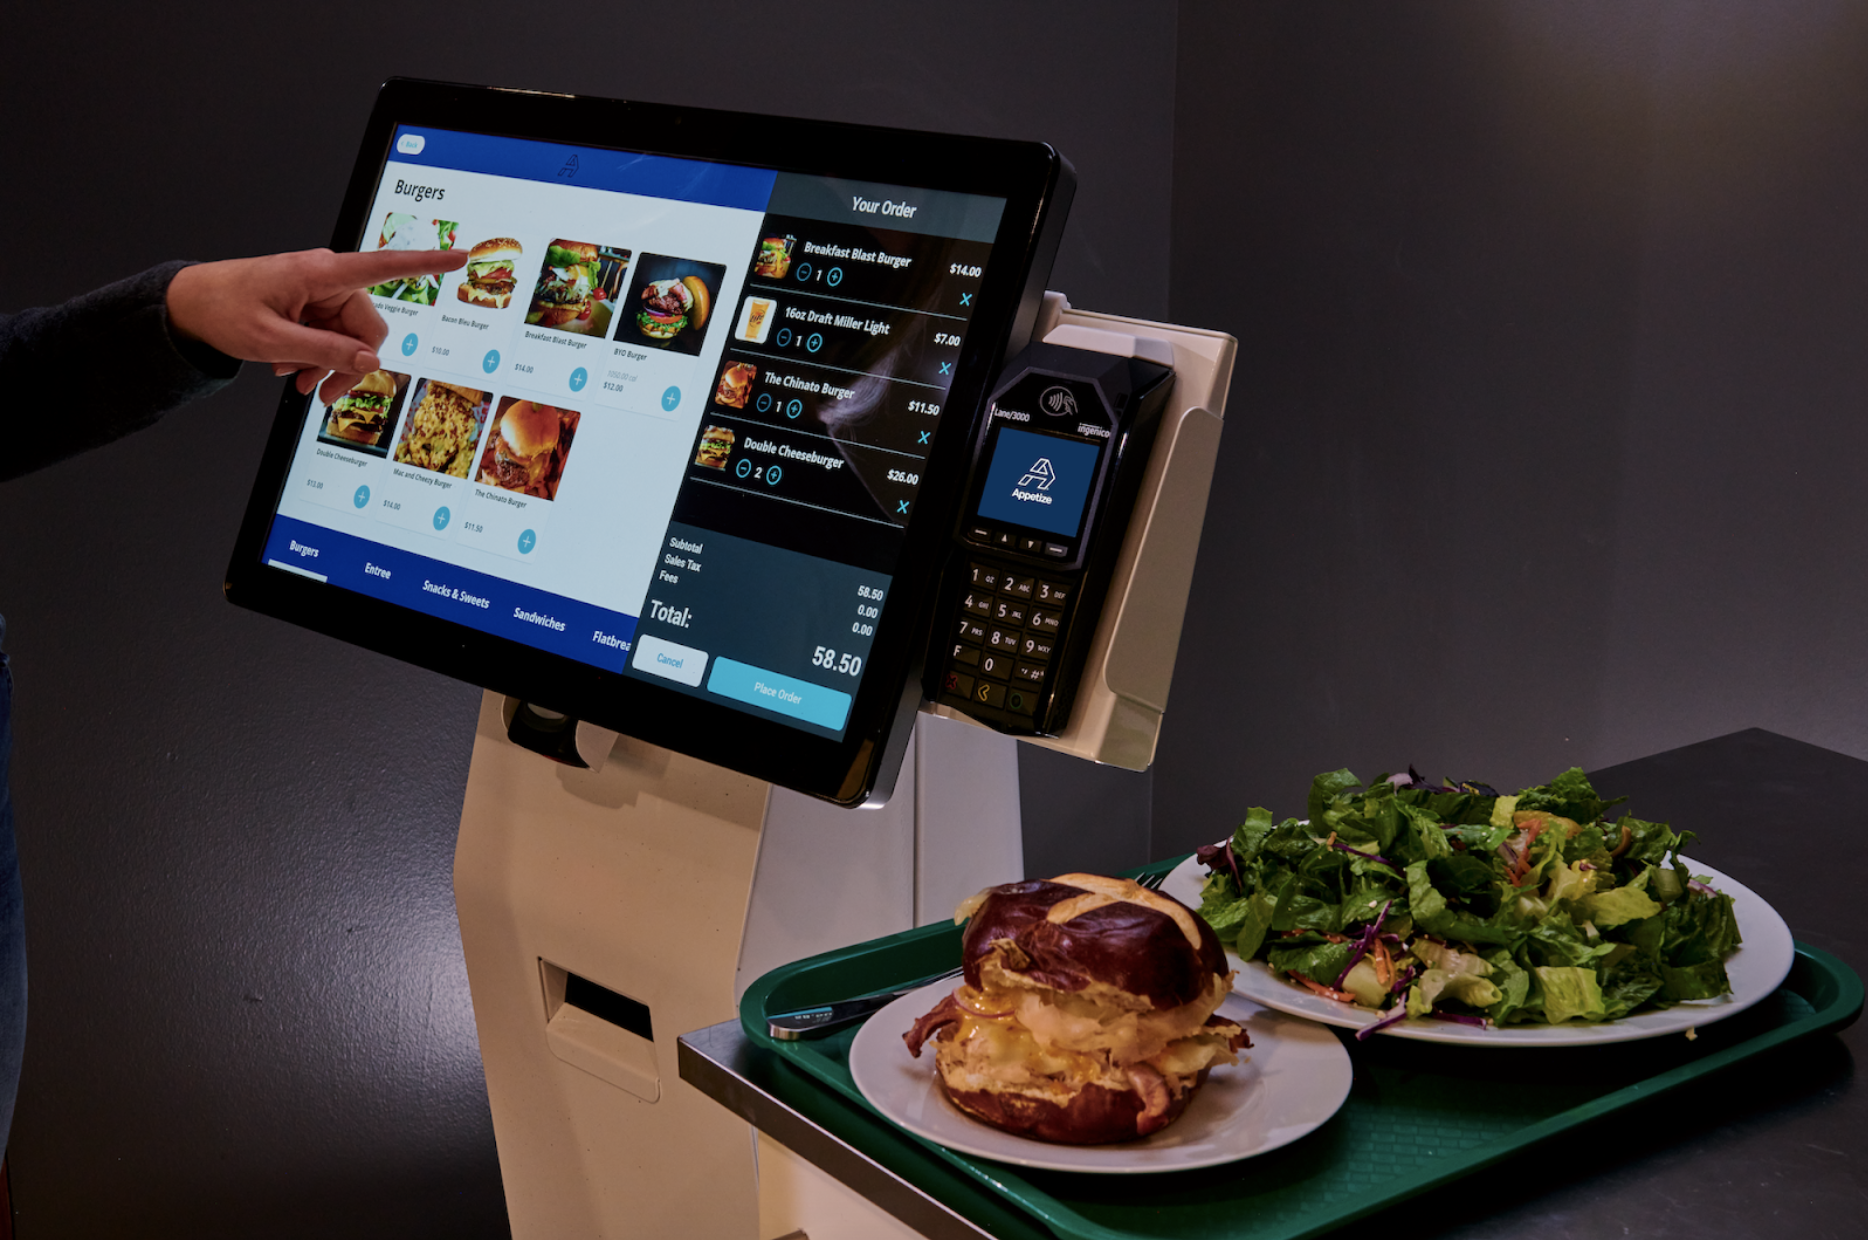 a laptop computer sitting on top of a plate of food